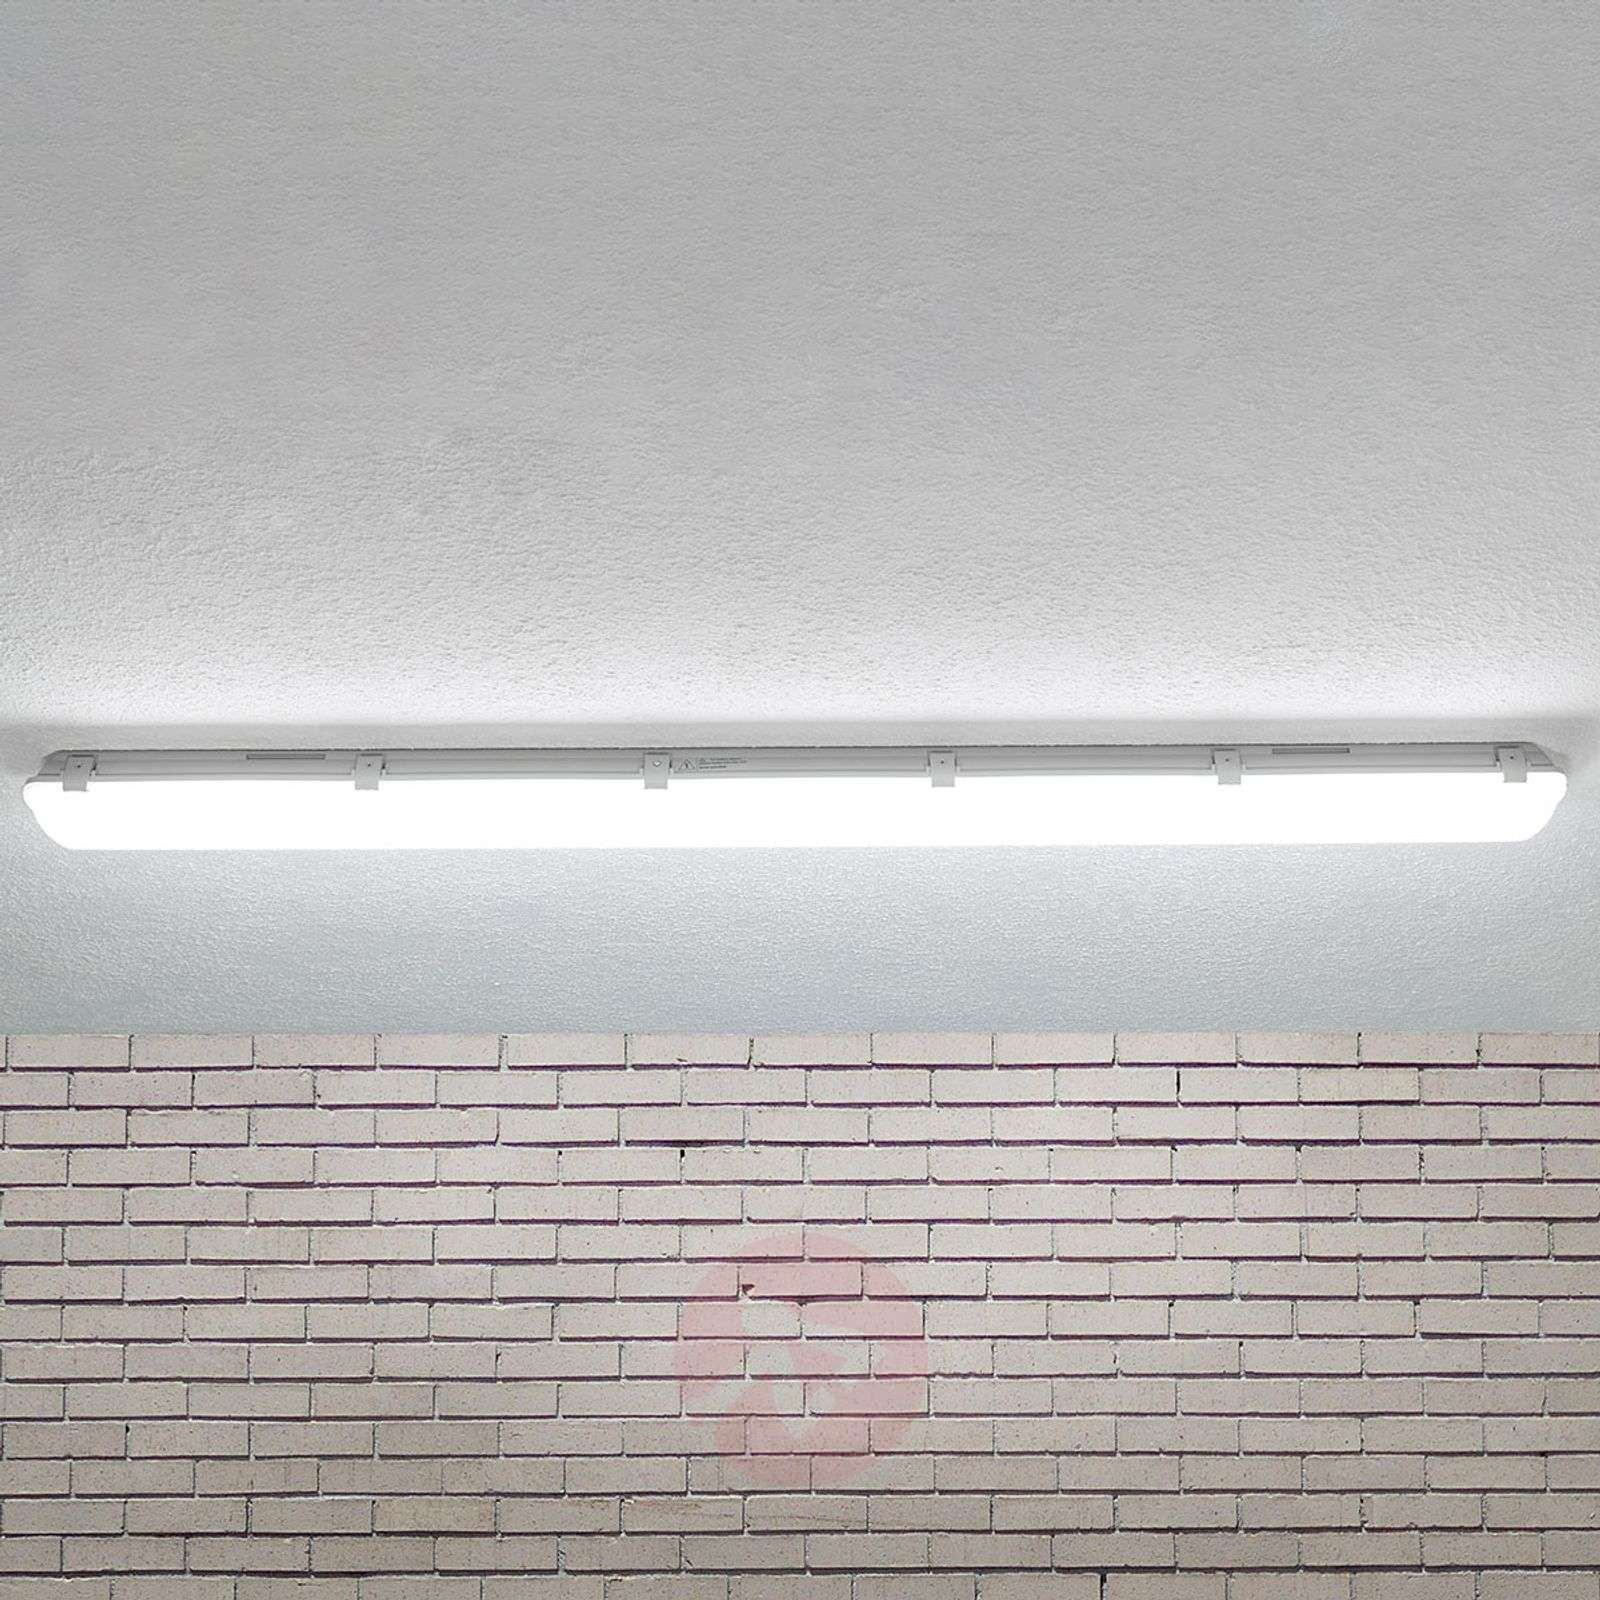 LED-kattovalaisin Mareen IP65 42,5 W 151,5 cm-9967032-02